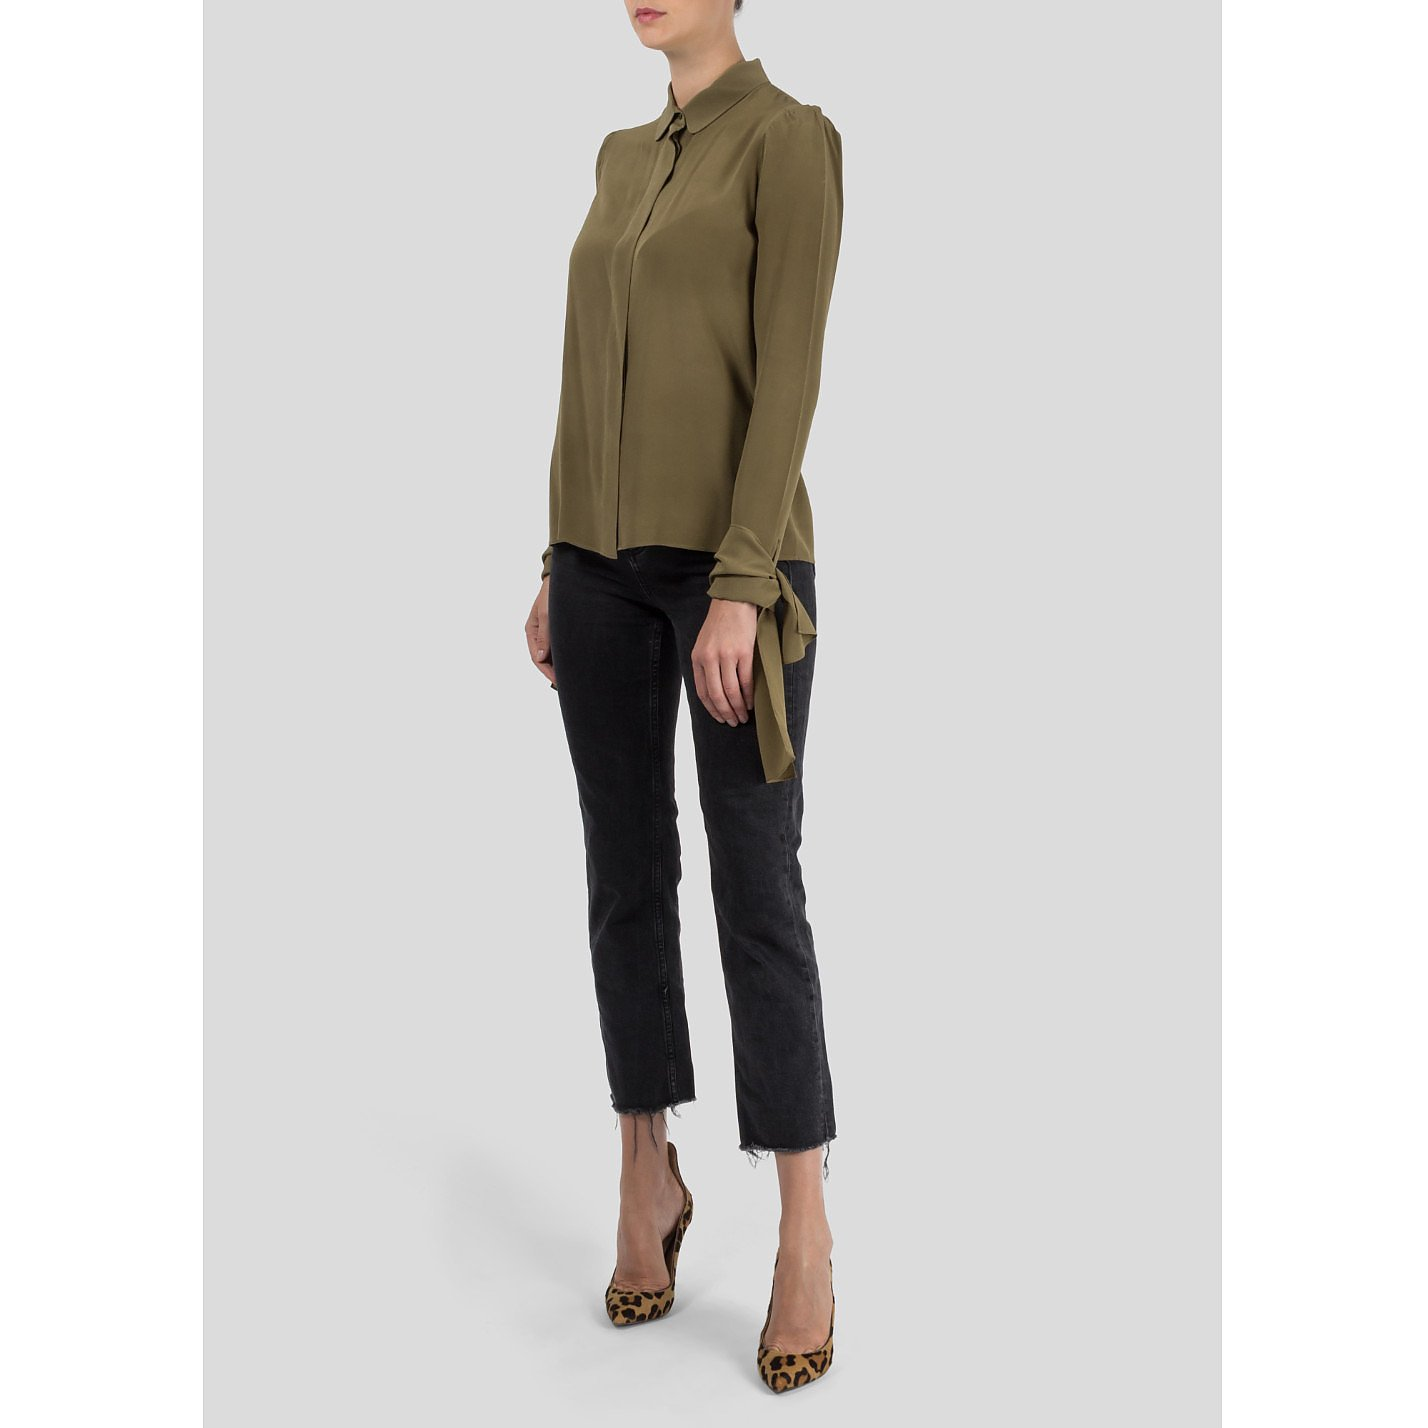 Chloé Blouse with Tie Up Sleeves